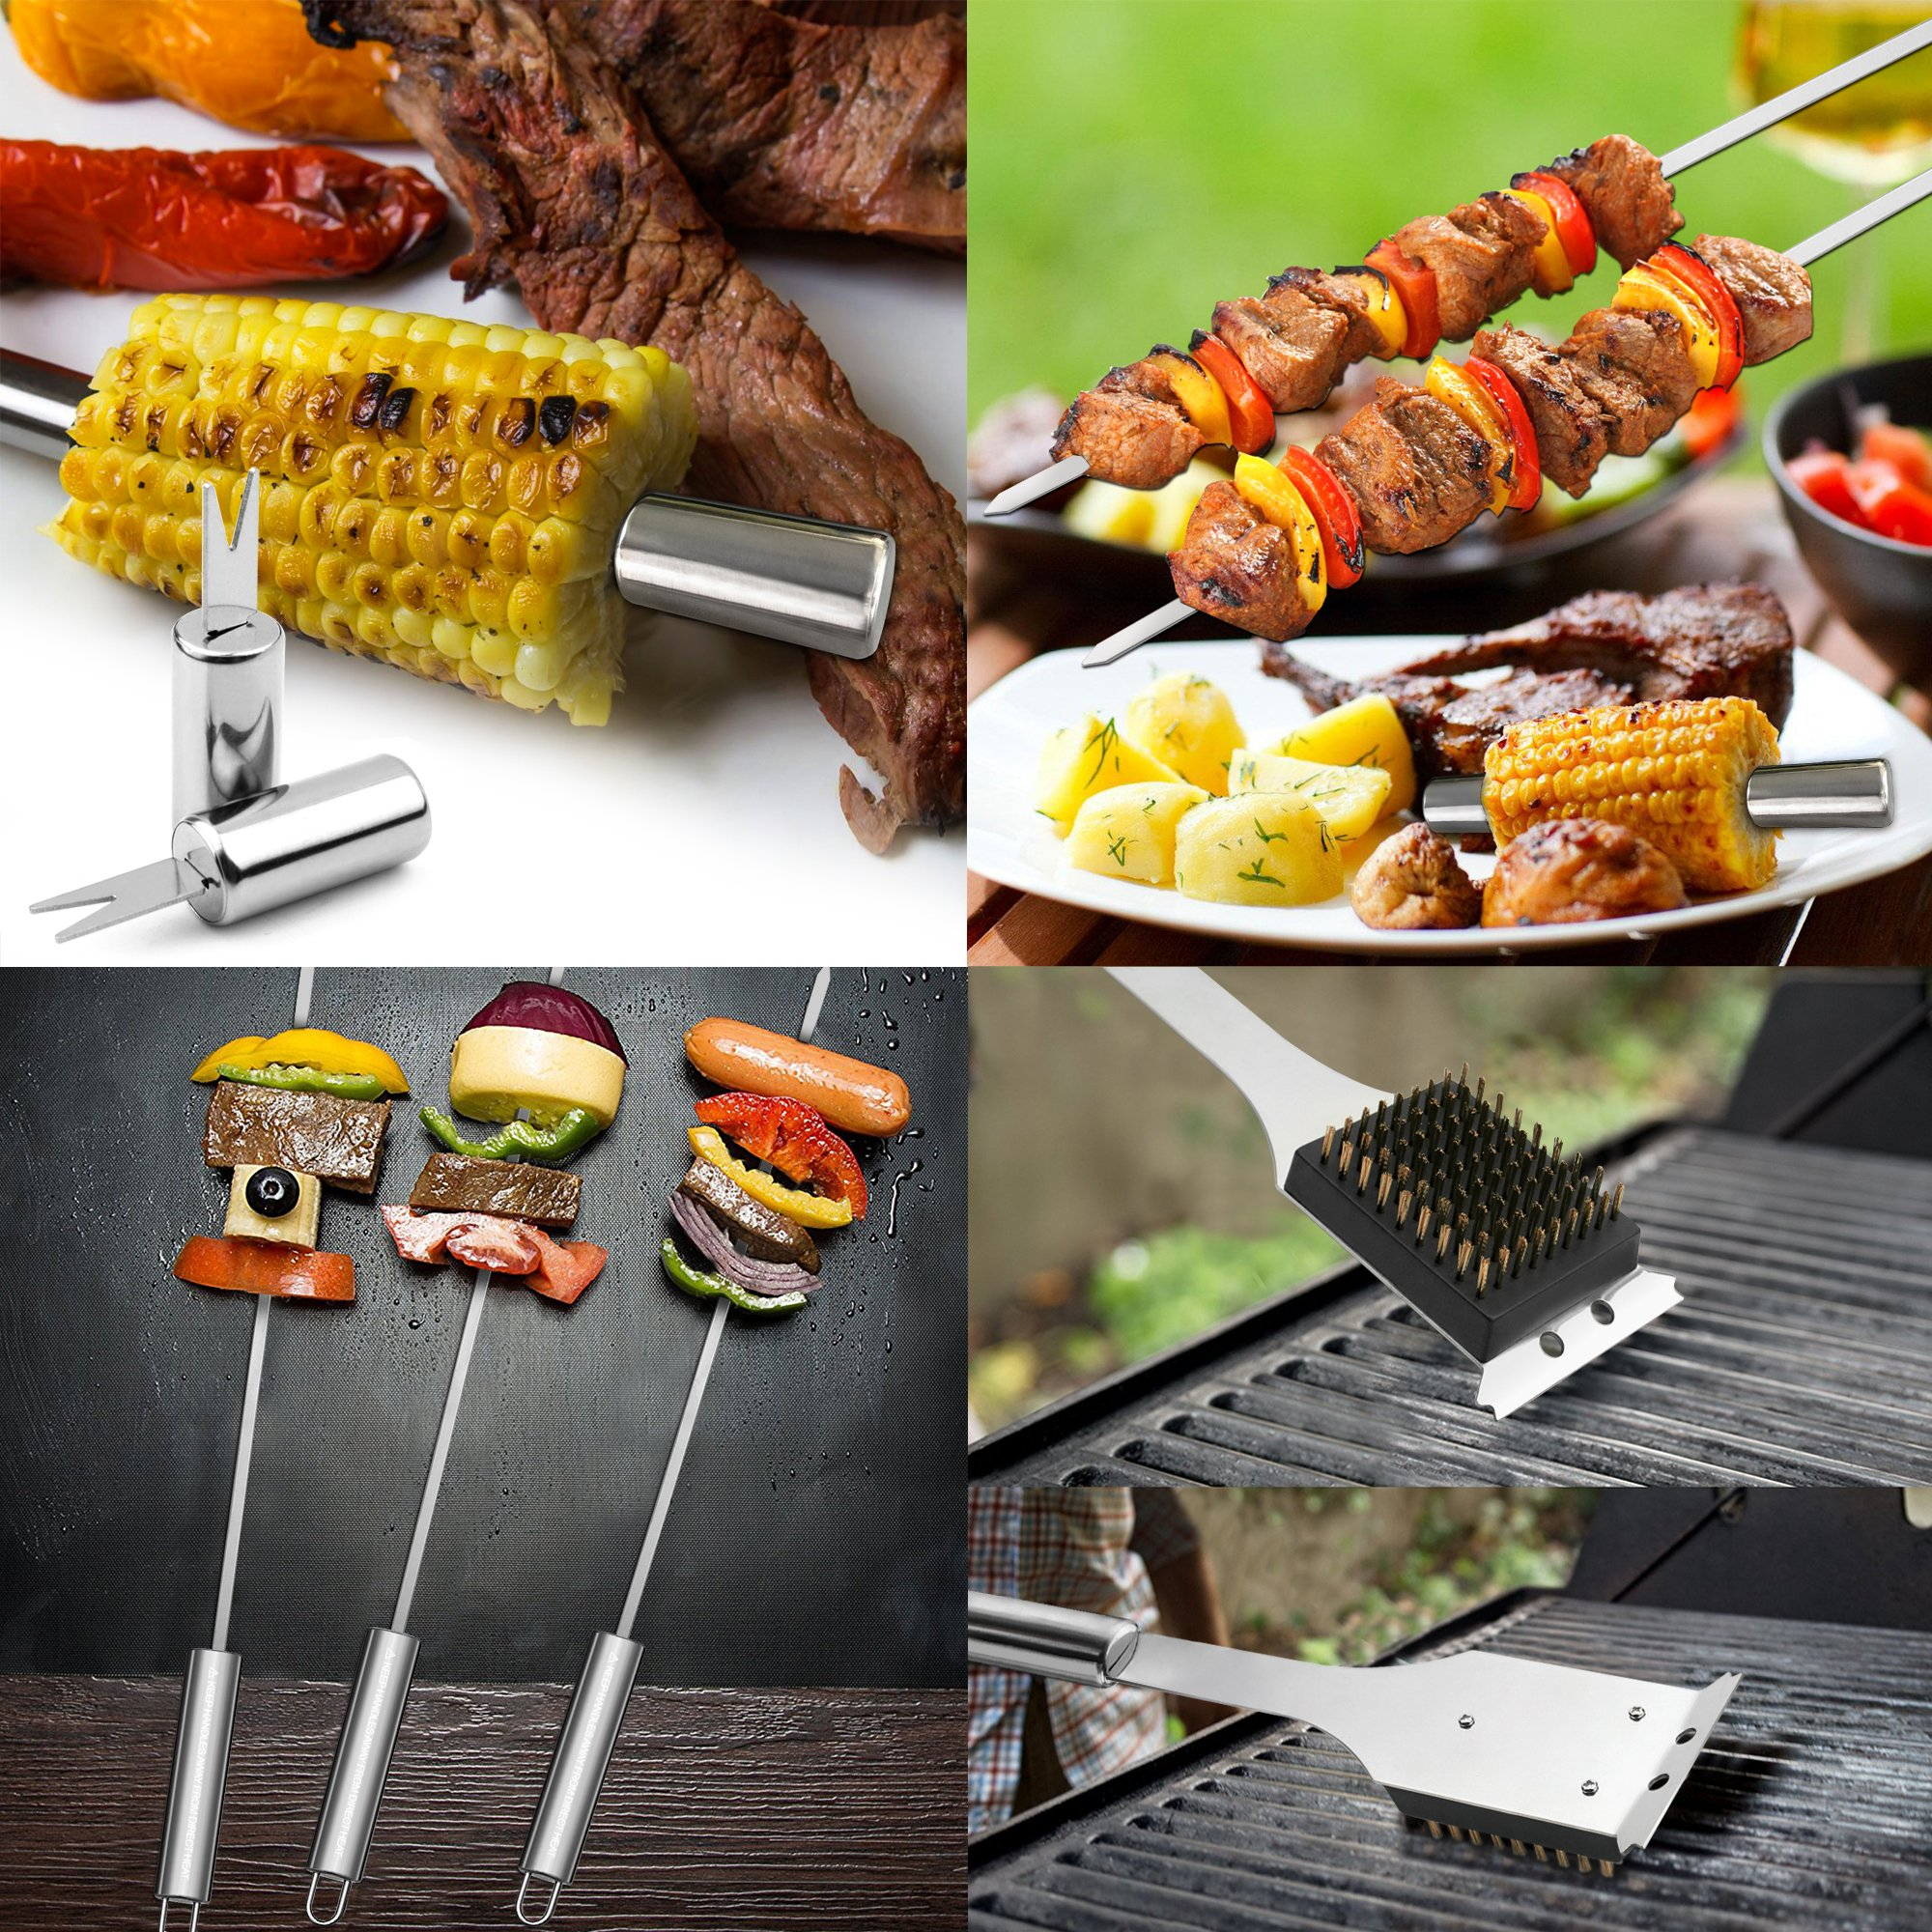 GRILLART BBQ Grill Utensil Tools Set Reinforced BBQ Tongs 19-Piece Stainless-Steel Barbecue Grilling Accessories with Aluminum Storage Case -Complete Outdoor Grill Kit for Dad, Birthday Gift for Man by GRILLART (Image #6)